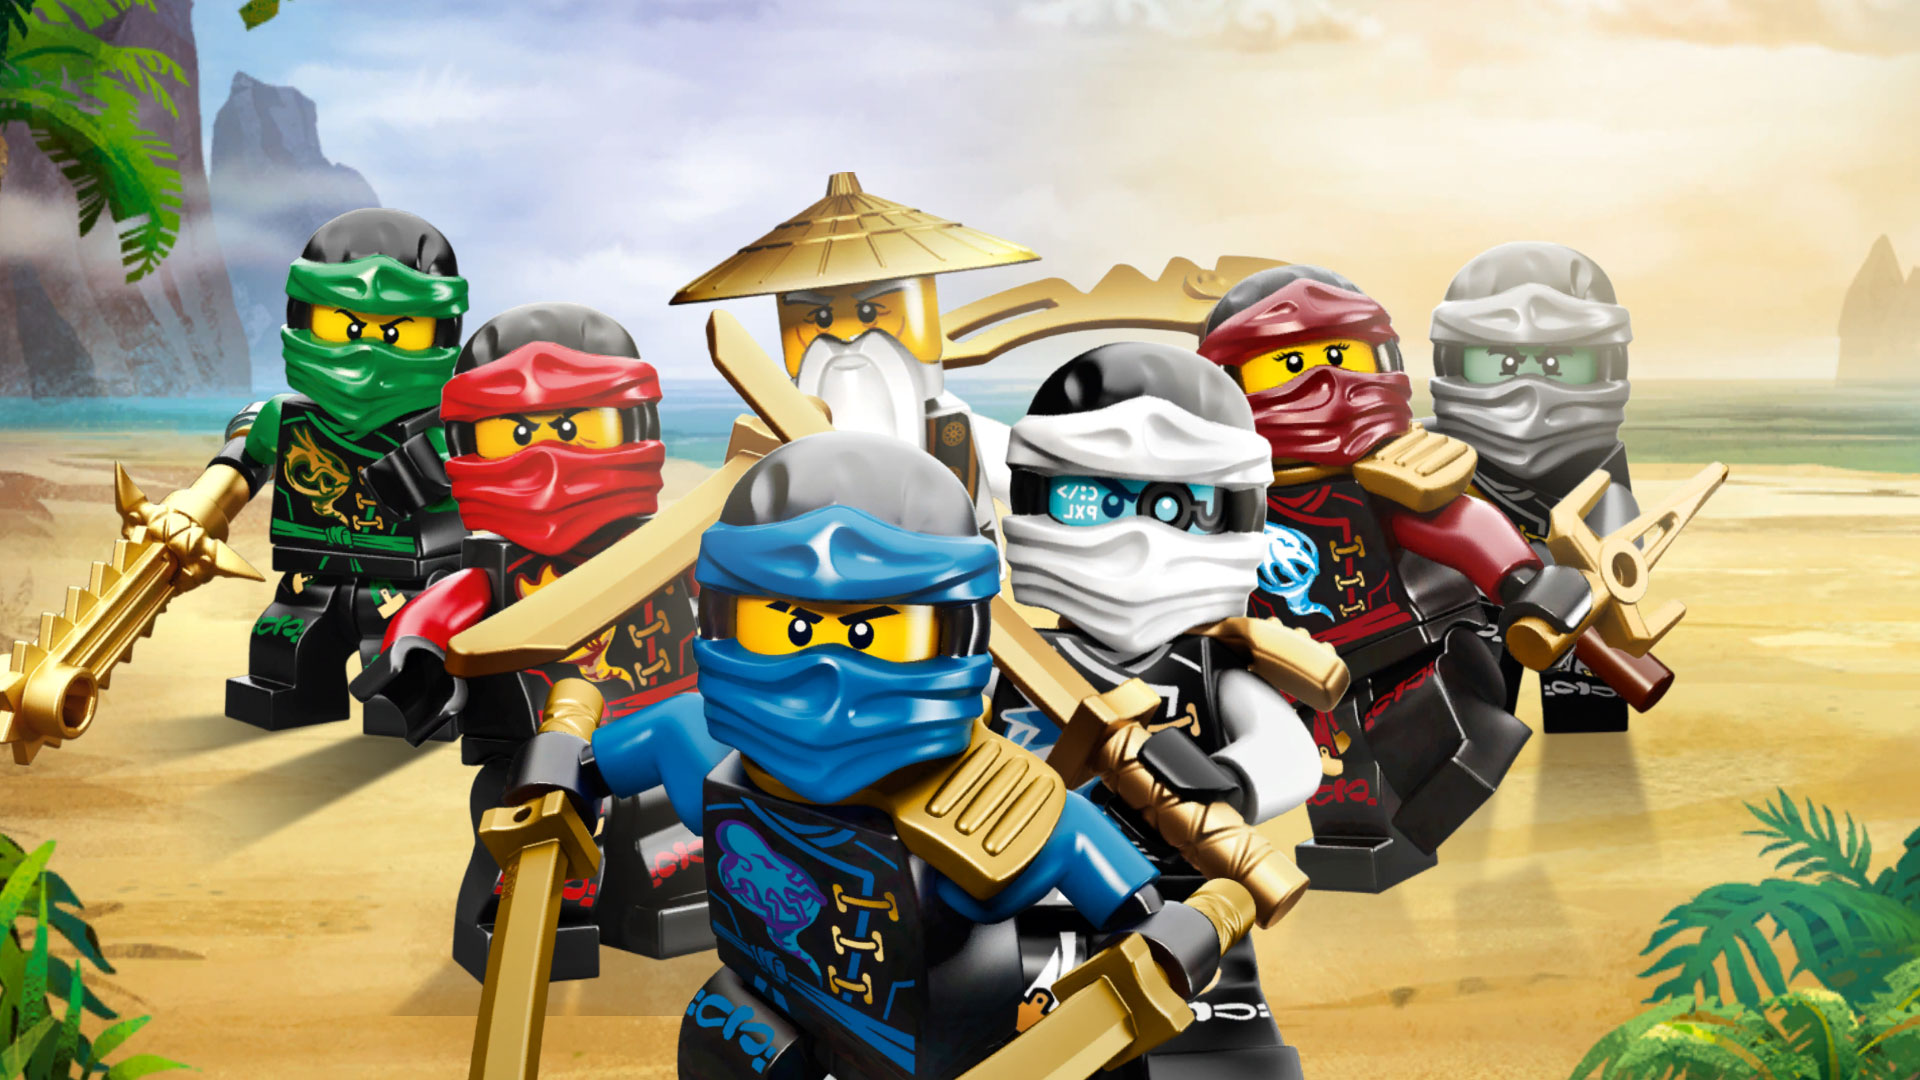 1The Lego Ninjago